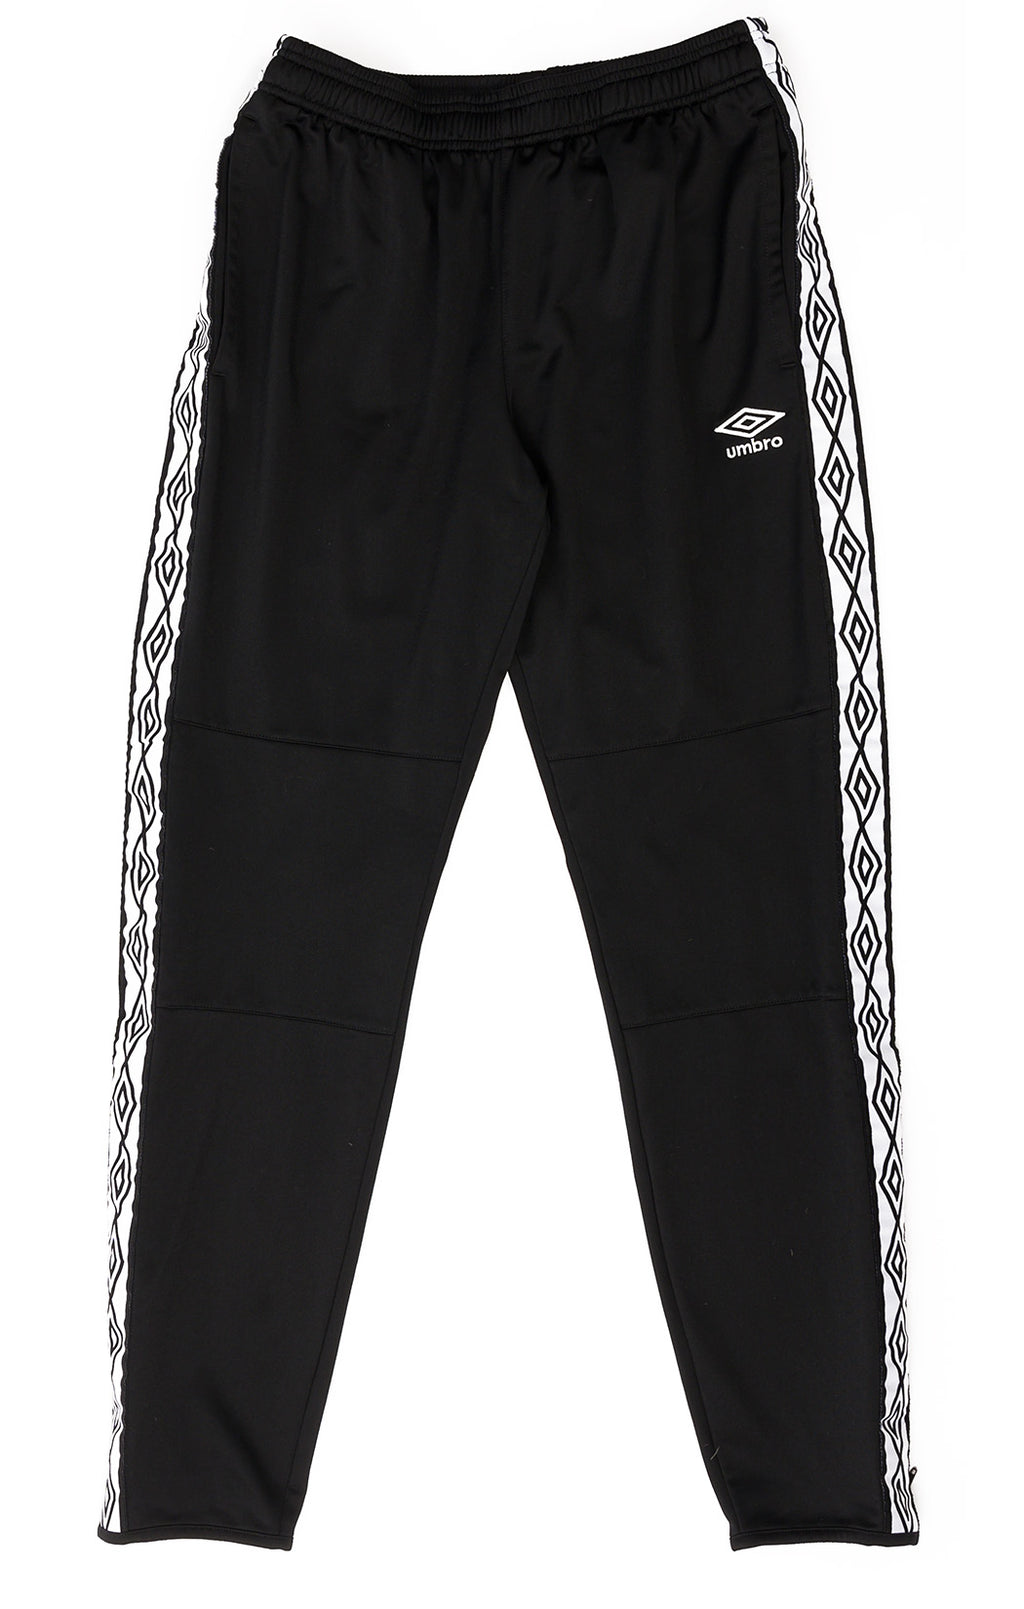 Front view of UMBRO Track pant Size: Medium